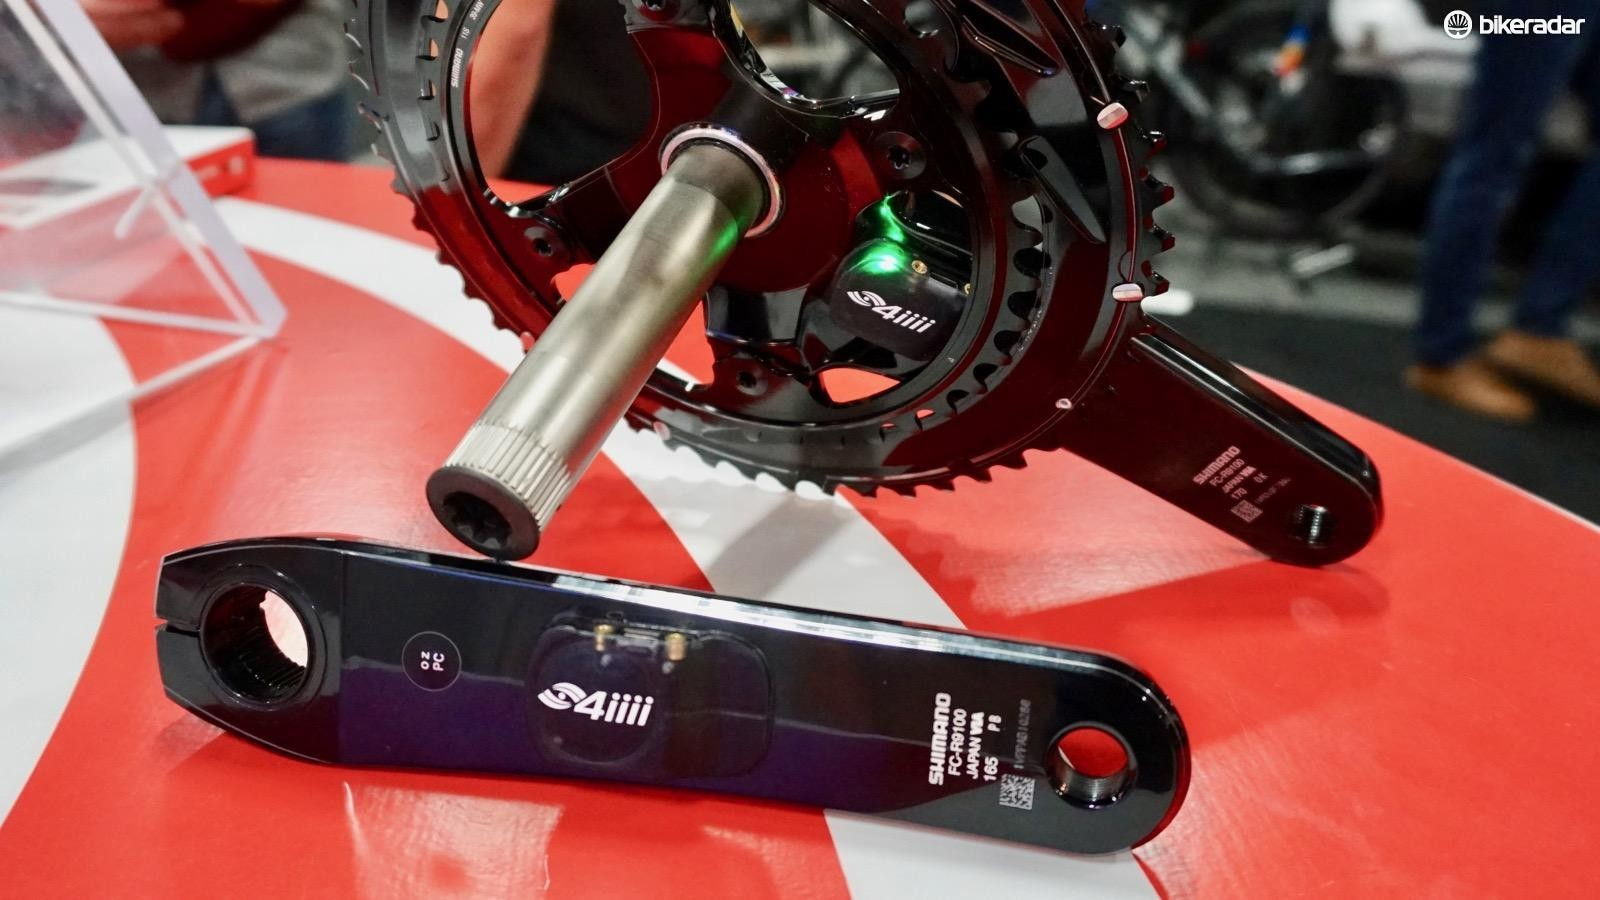 The new Precision Podiiiium features both a slimmer pod on the left crank (down to a claimed 7.5mm from 8.2mm) and a hidden pod on the drivetrain arm